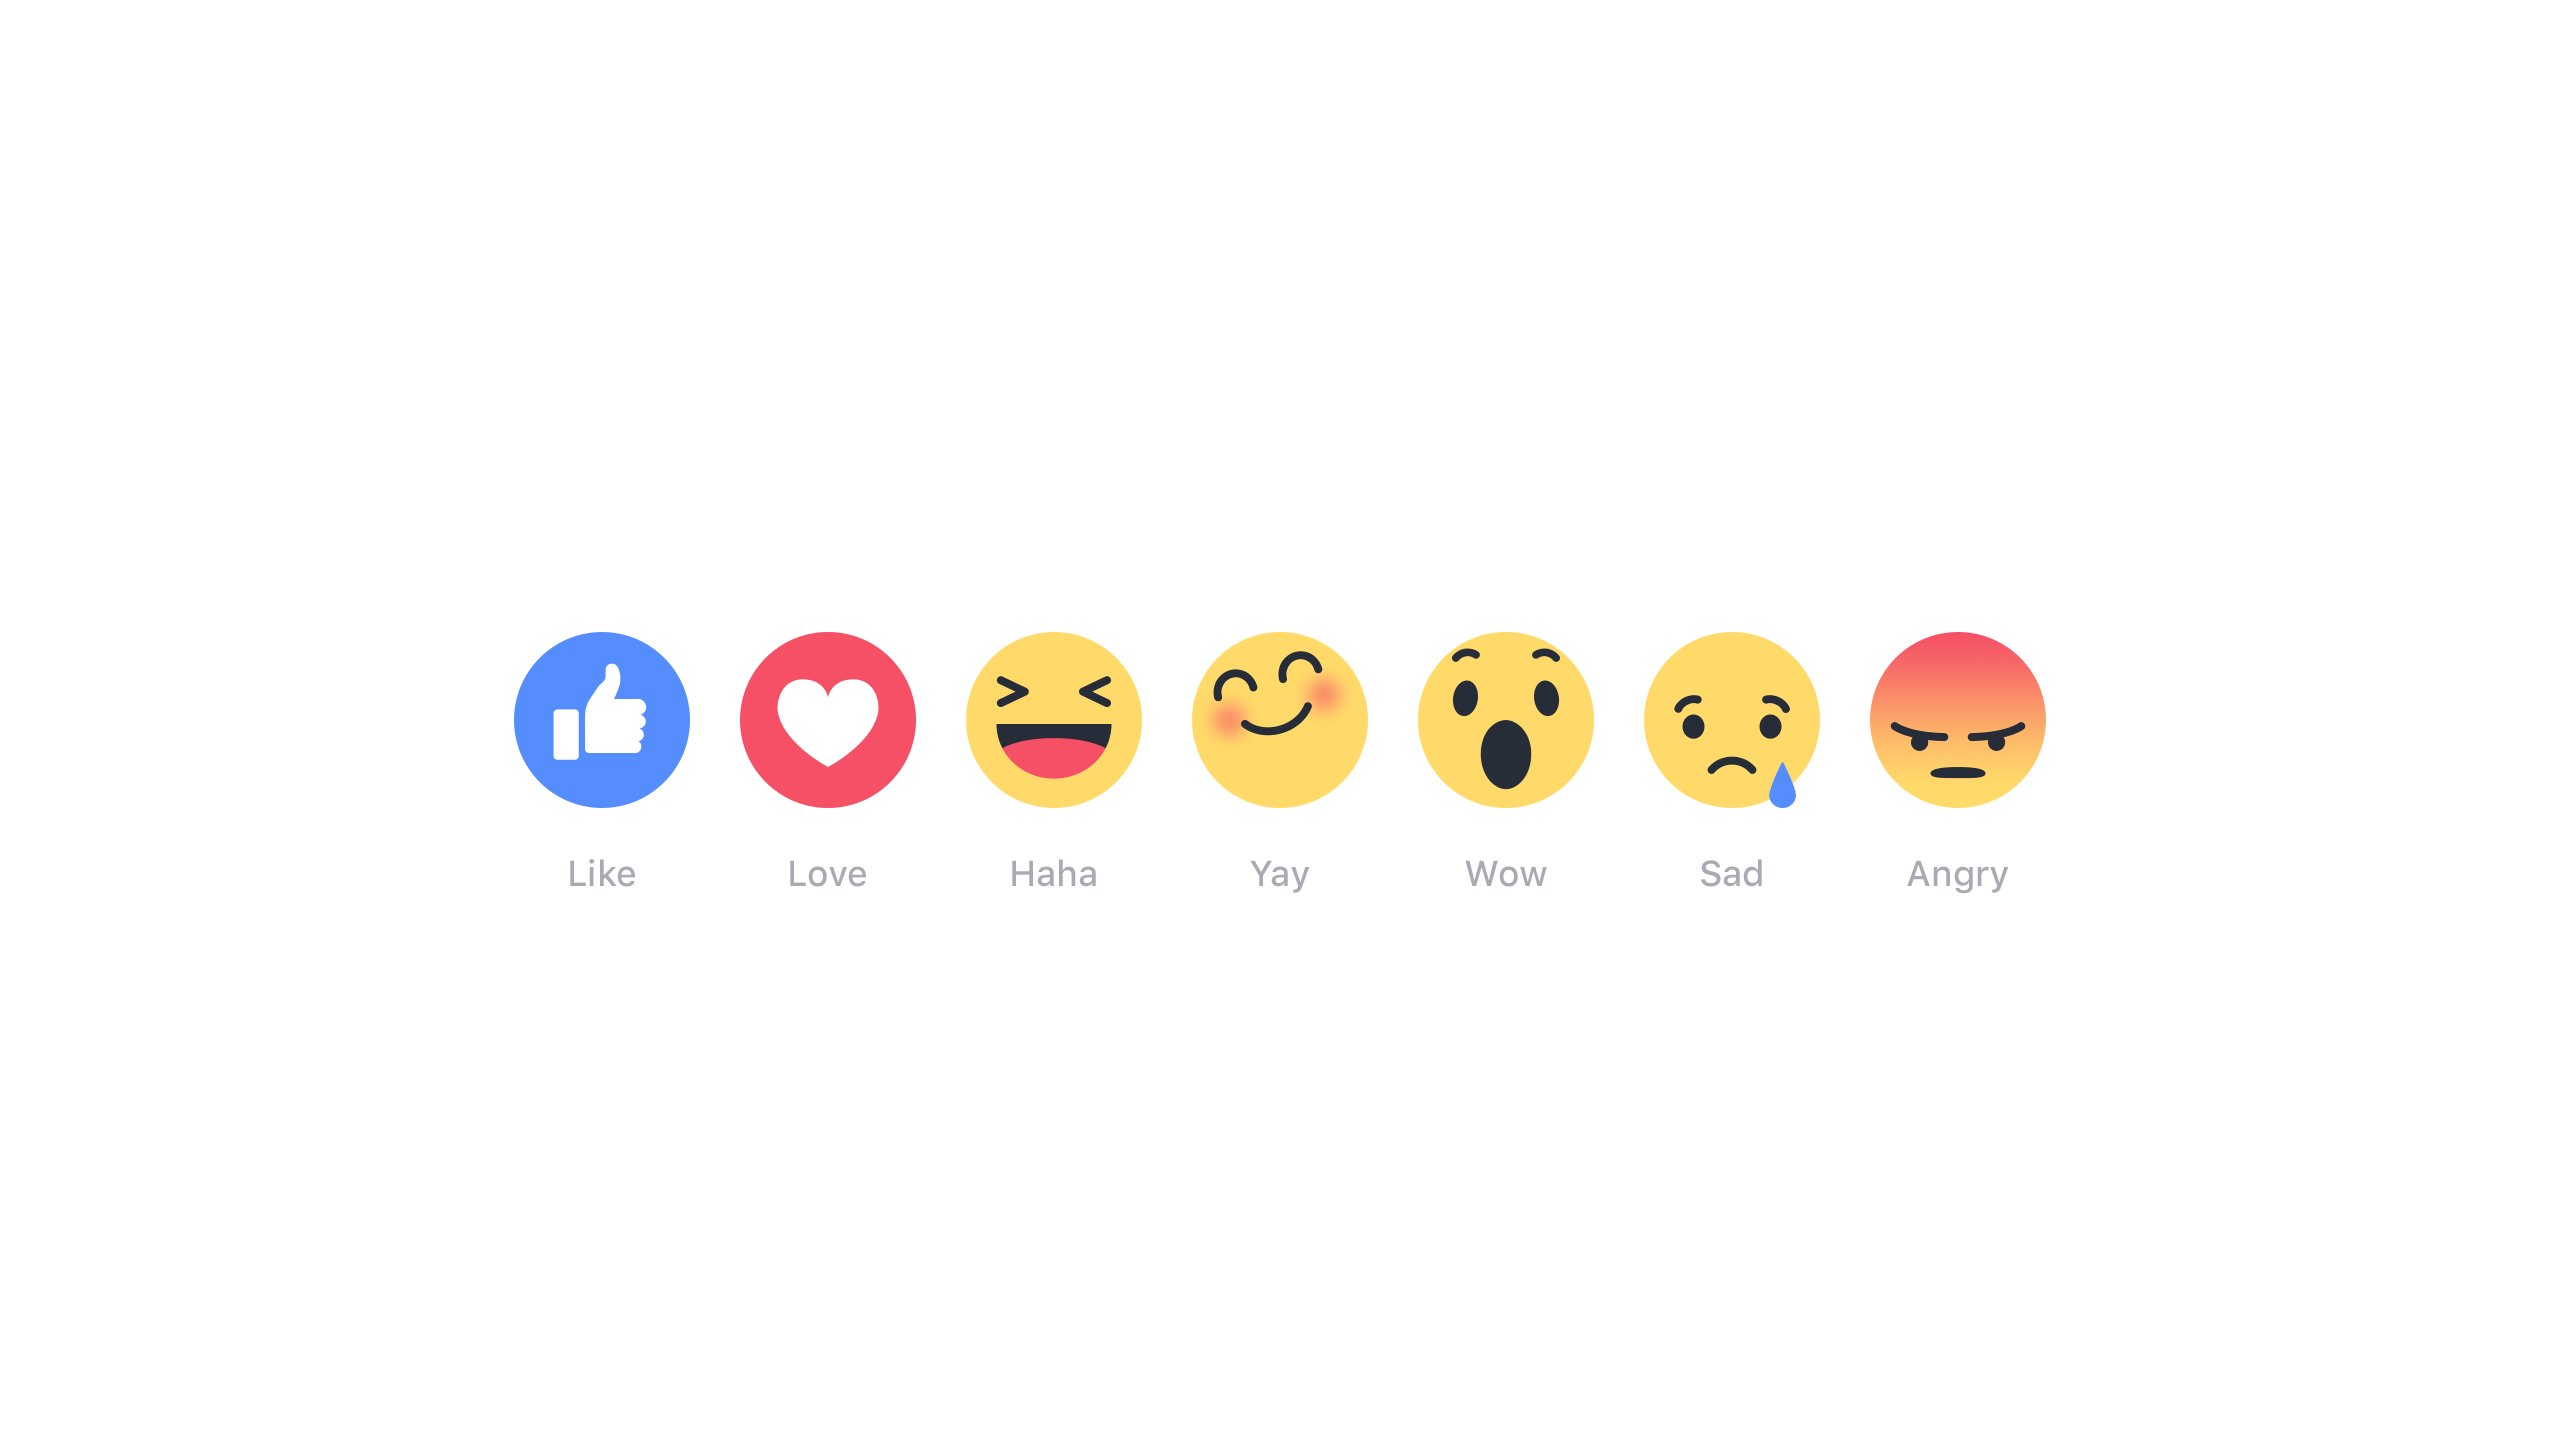 """Facebook users will soon be able to express a fuller range of emotions online with a set of new expressions and animated emojis. There's a throbbing heart for """"Love,"""" a fuming face for """"Angry,"""" a teary-eyed """"Sad,"""" a laughing """"Haha,"""" a surprised """"Wow"""" and an eyes-closed smile for """"Yay."""" Facebook unsurprisingly calls the new feature """"Reactions."""""""